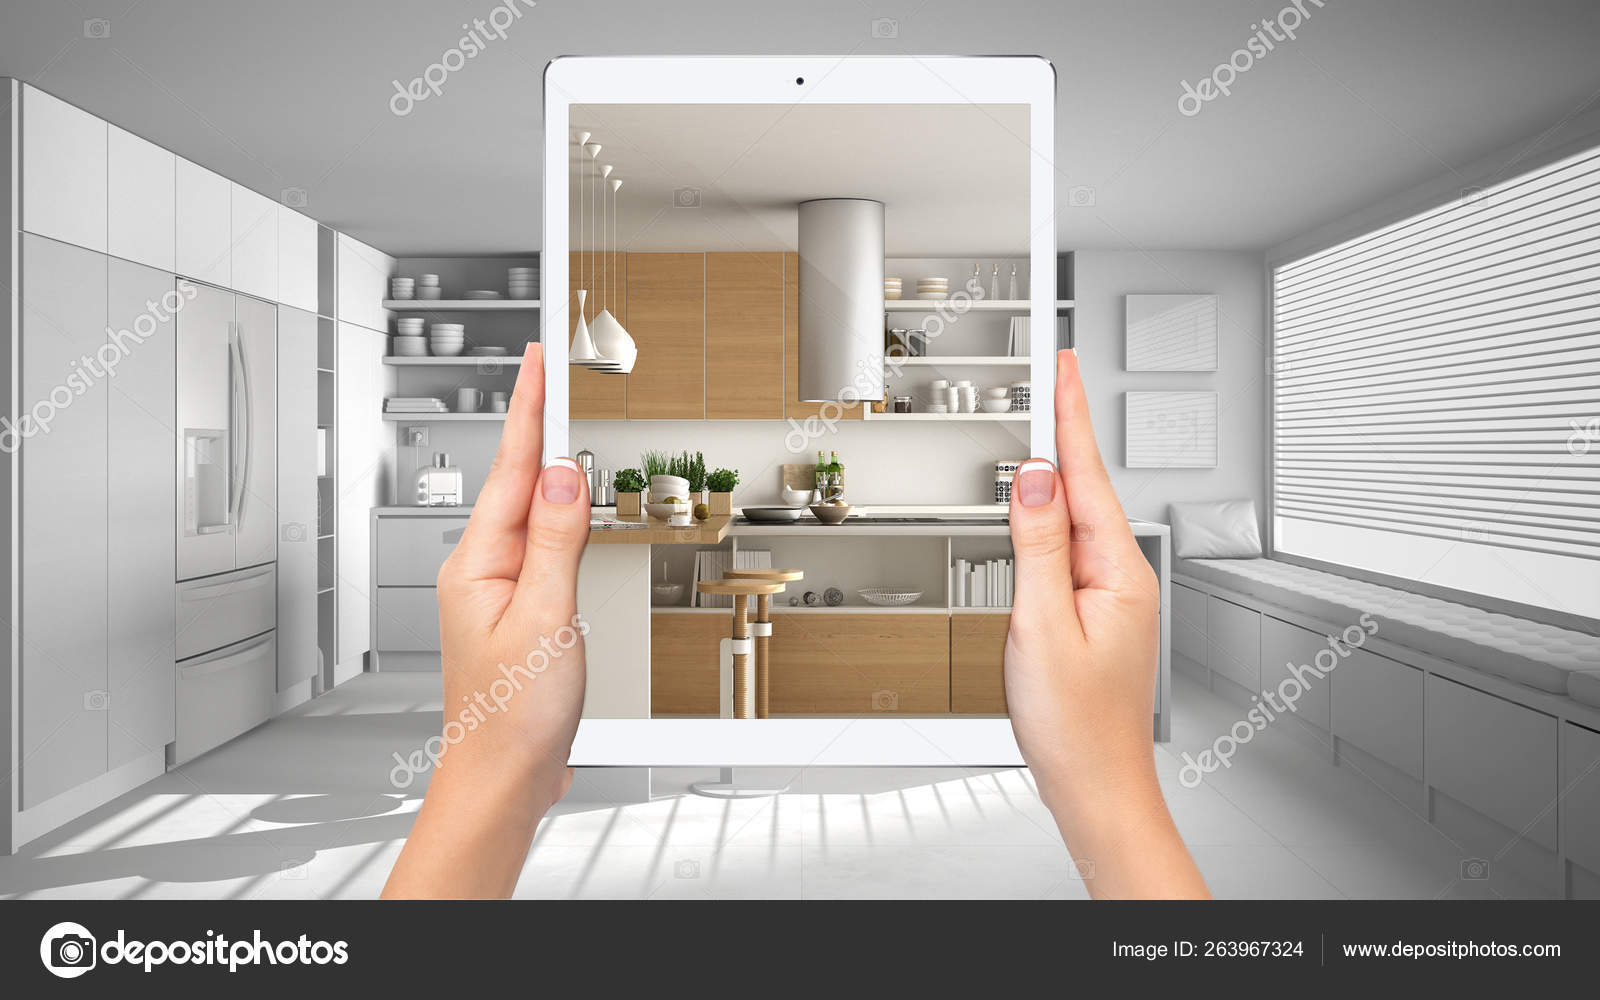 Hands Holding Tablet Showing Modern White And Wooden Kitchen Total Blank Project Background Augmented Reality Concept Application To Simulate Furniture And Interior Design Products Stock Photo C Archiviz 263967324